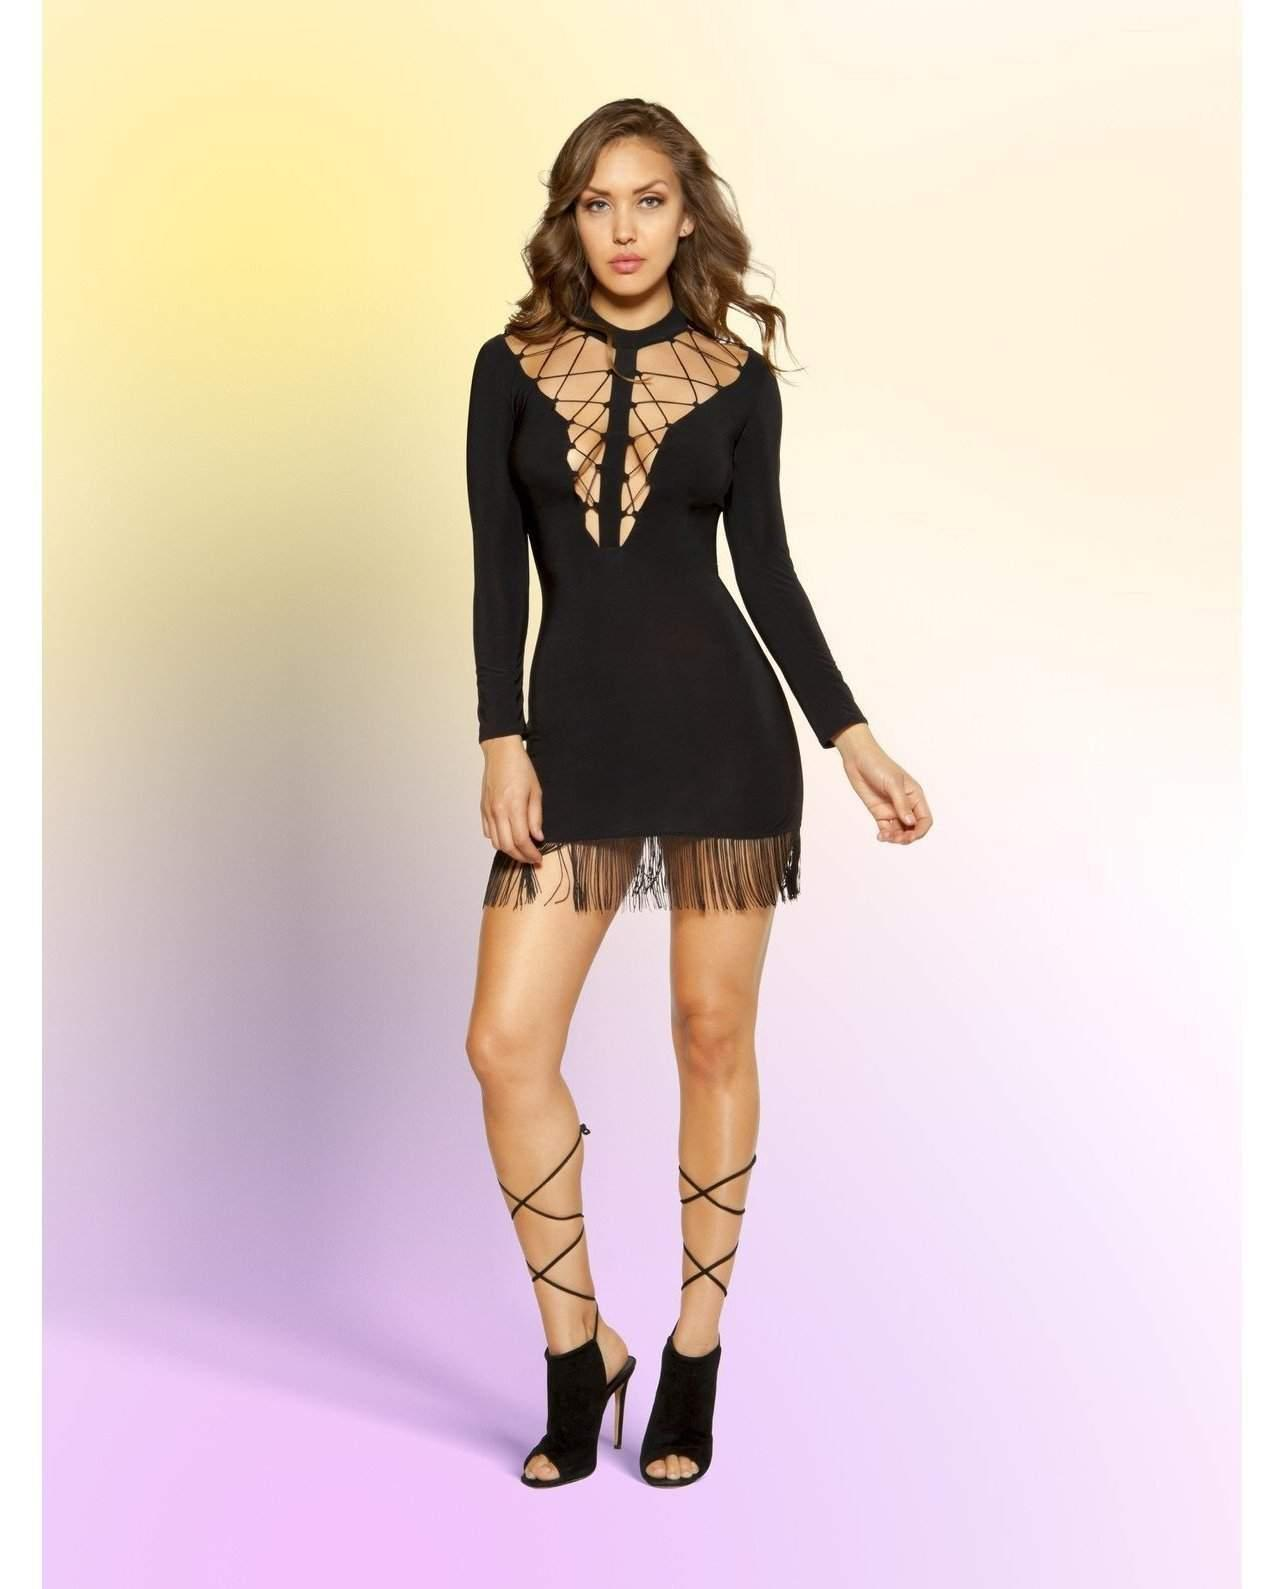 Strappy Dress with Hanging Fringe-club wear-Roma Costume-Small-Black-Nakees